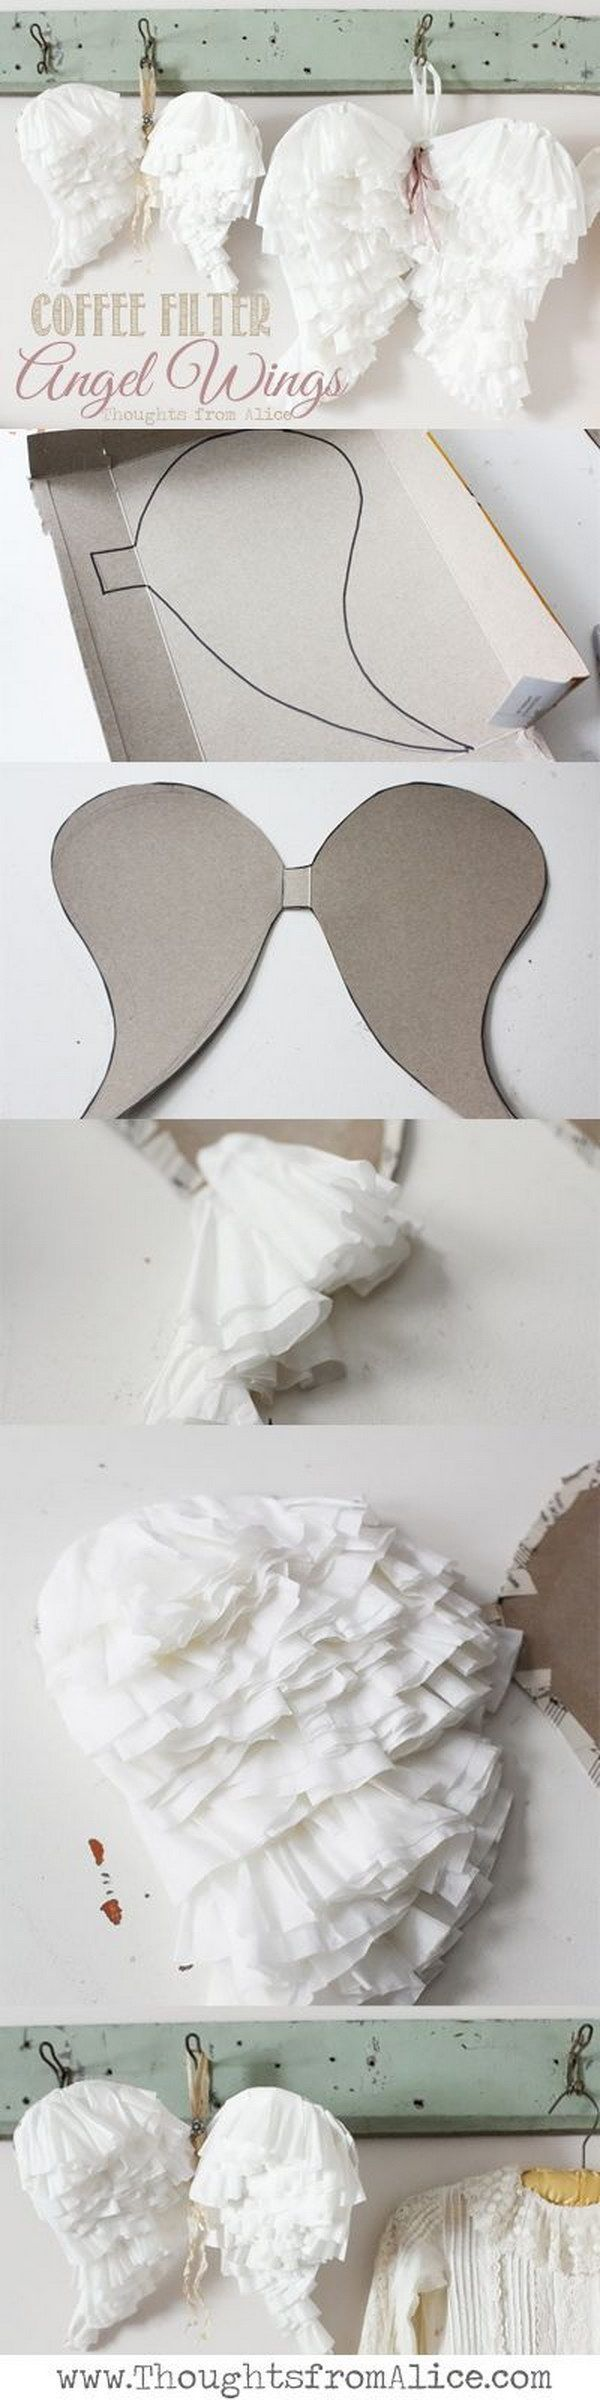 DIY Coffee Filter Angel Wings